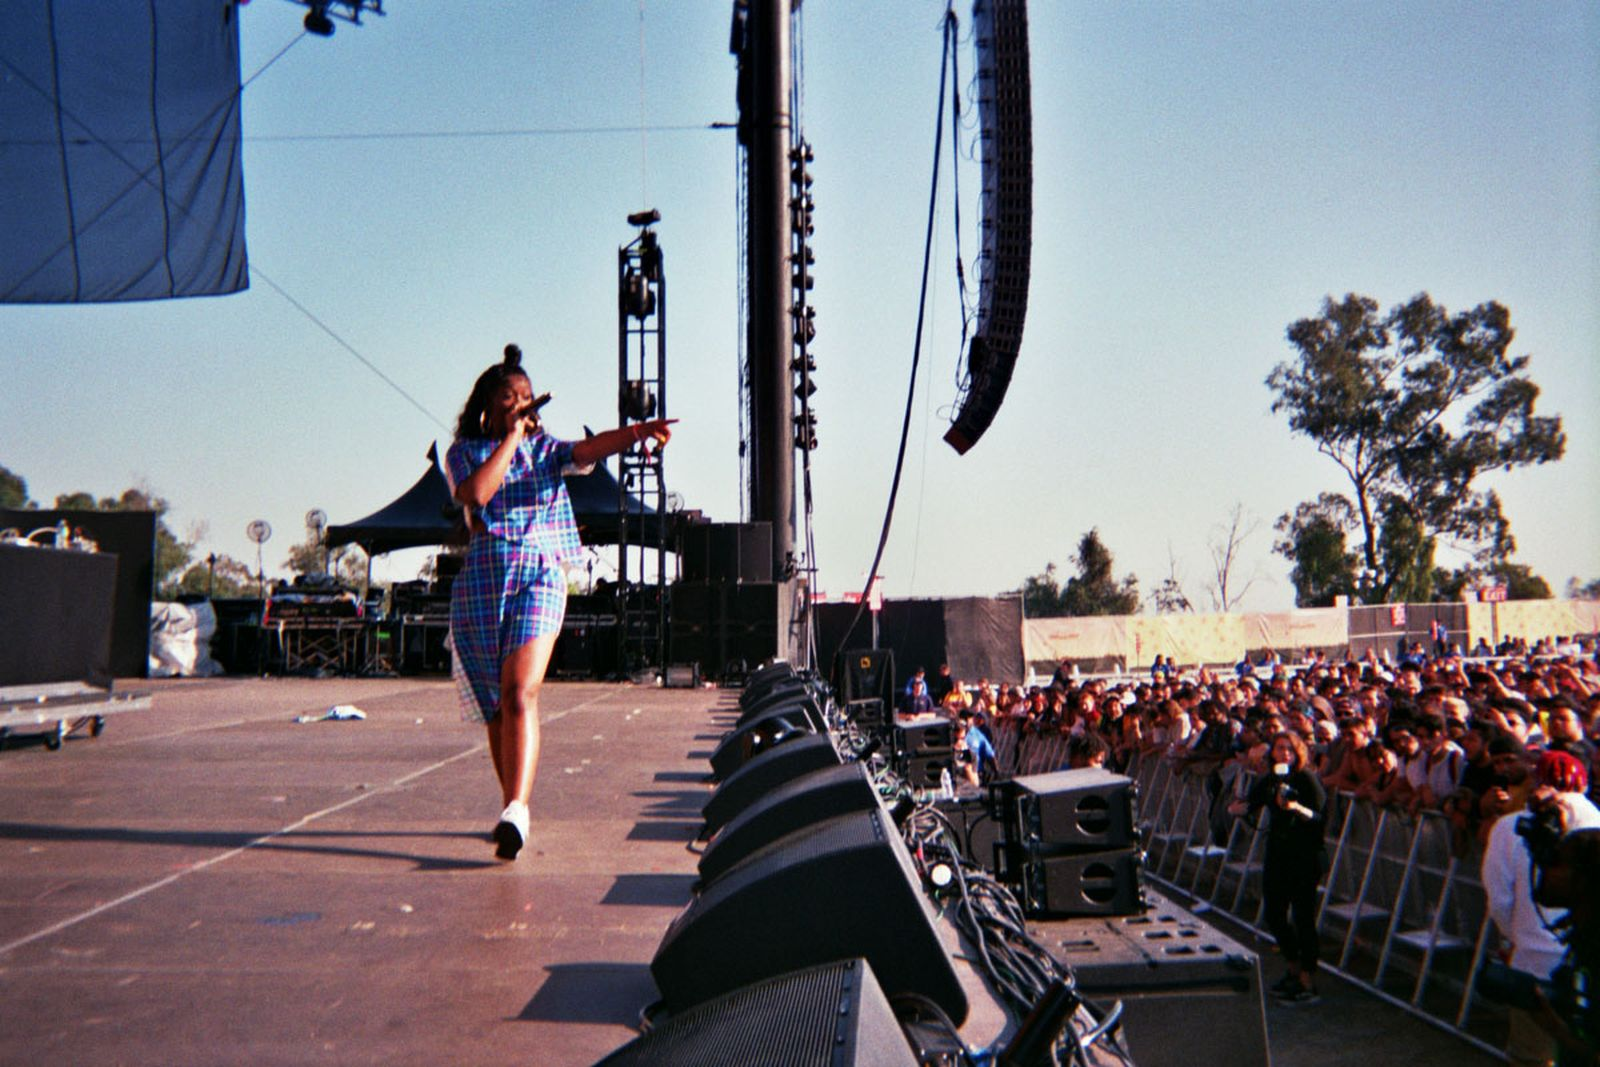 Camp Flog Gnaw Carnival photo diary tierra whack